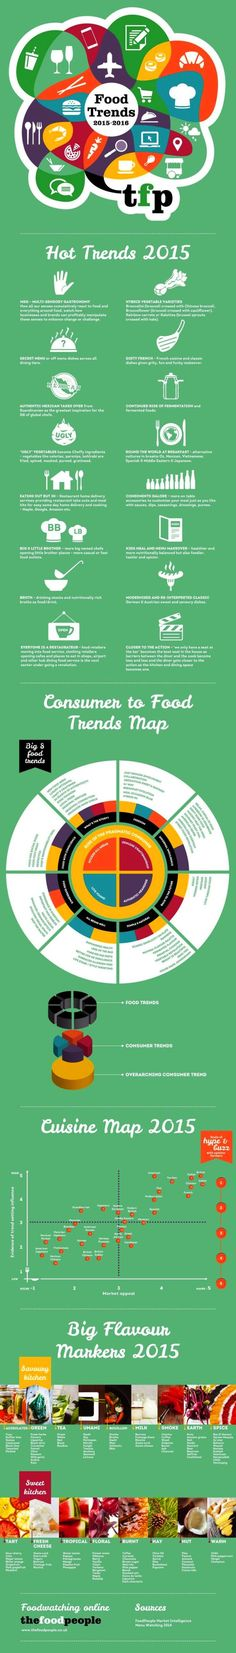 Food trends 2015 - infographic thefoodpeople.co.uk